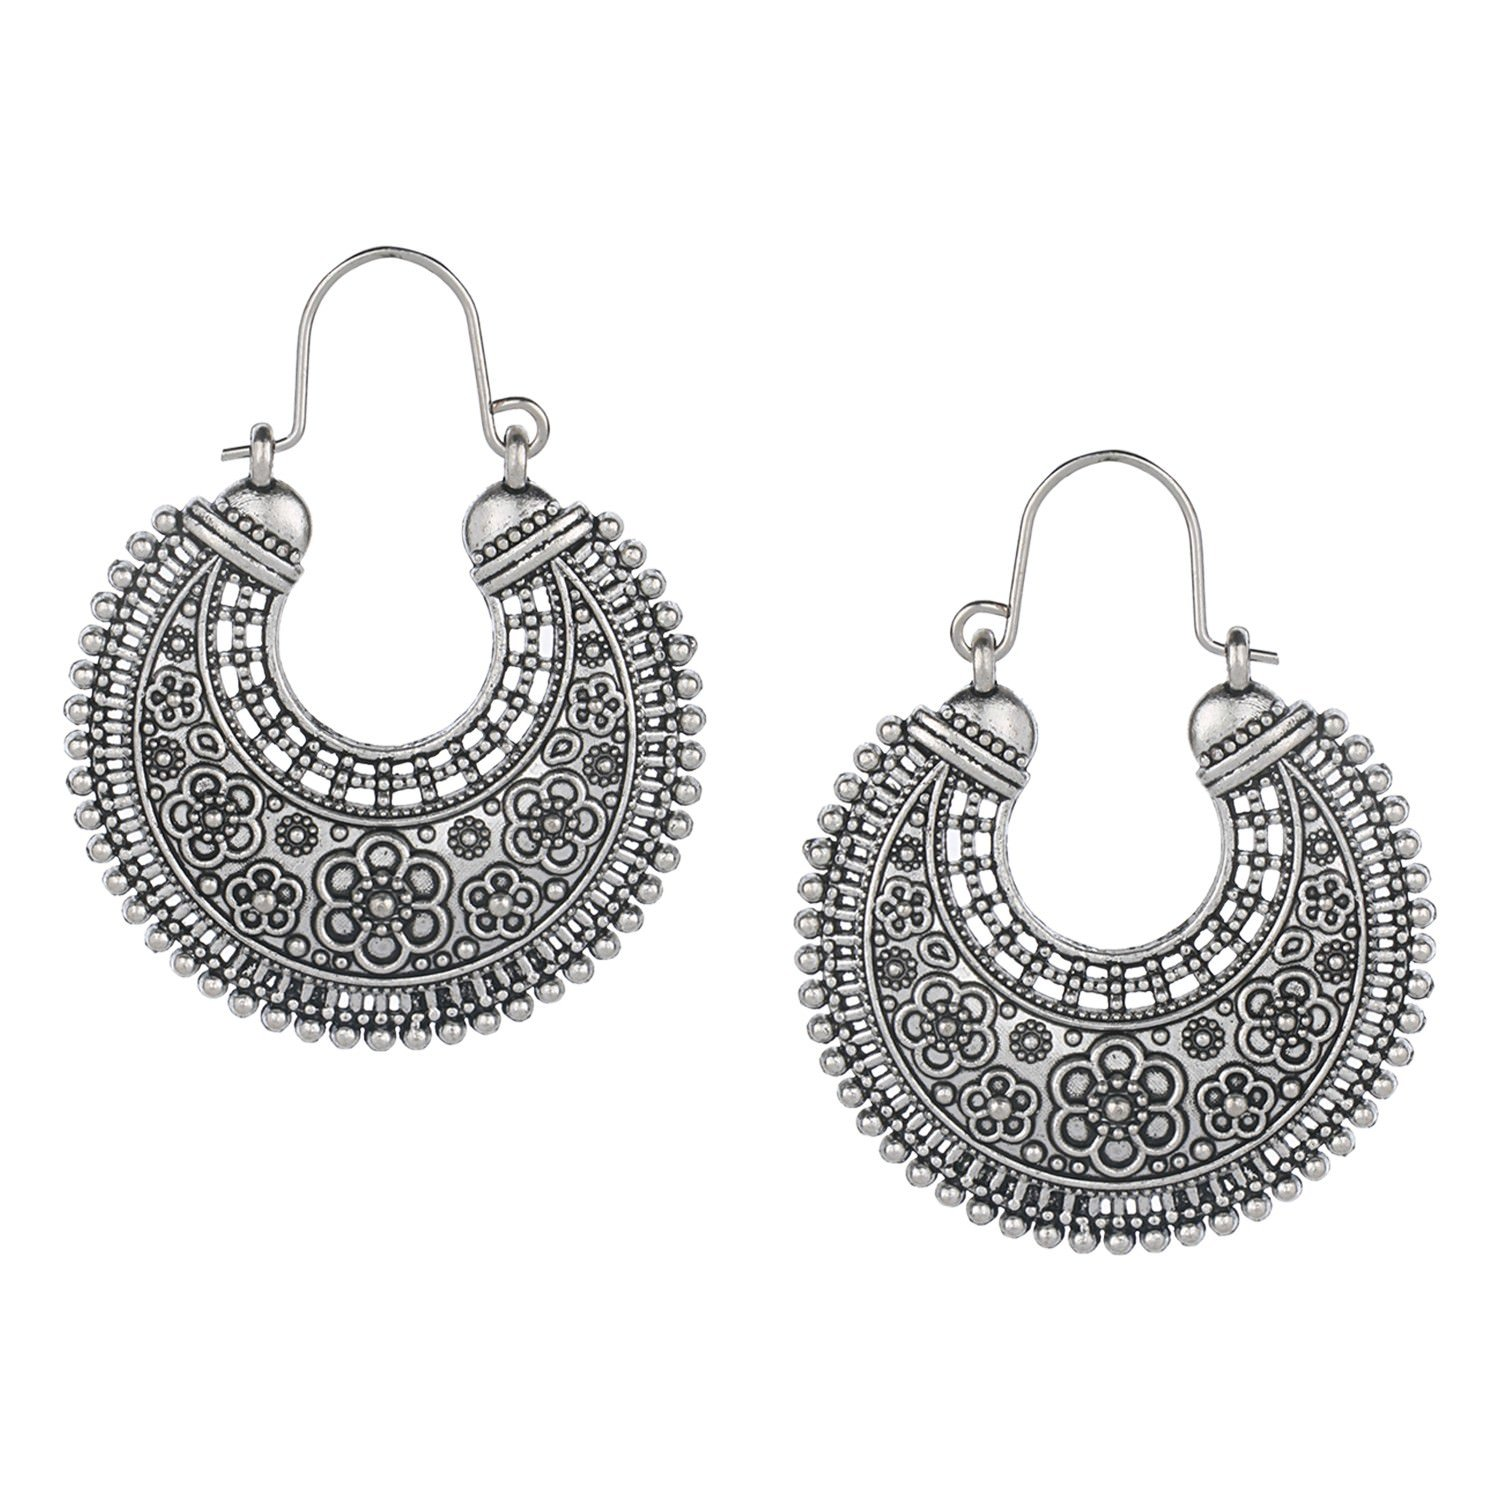 Efulgenz Indian Vintage Retro Ethnic Dangle Gypsy Oxidized Silver Tone Boho Hoop Earrings for Girls and Women Love Gift